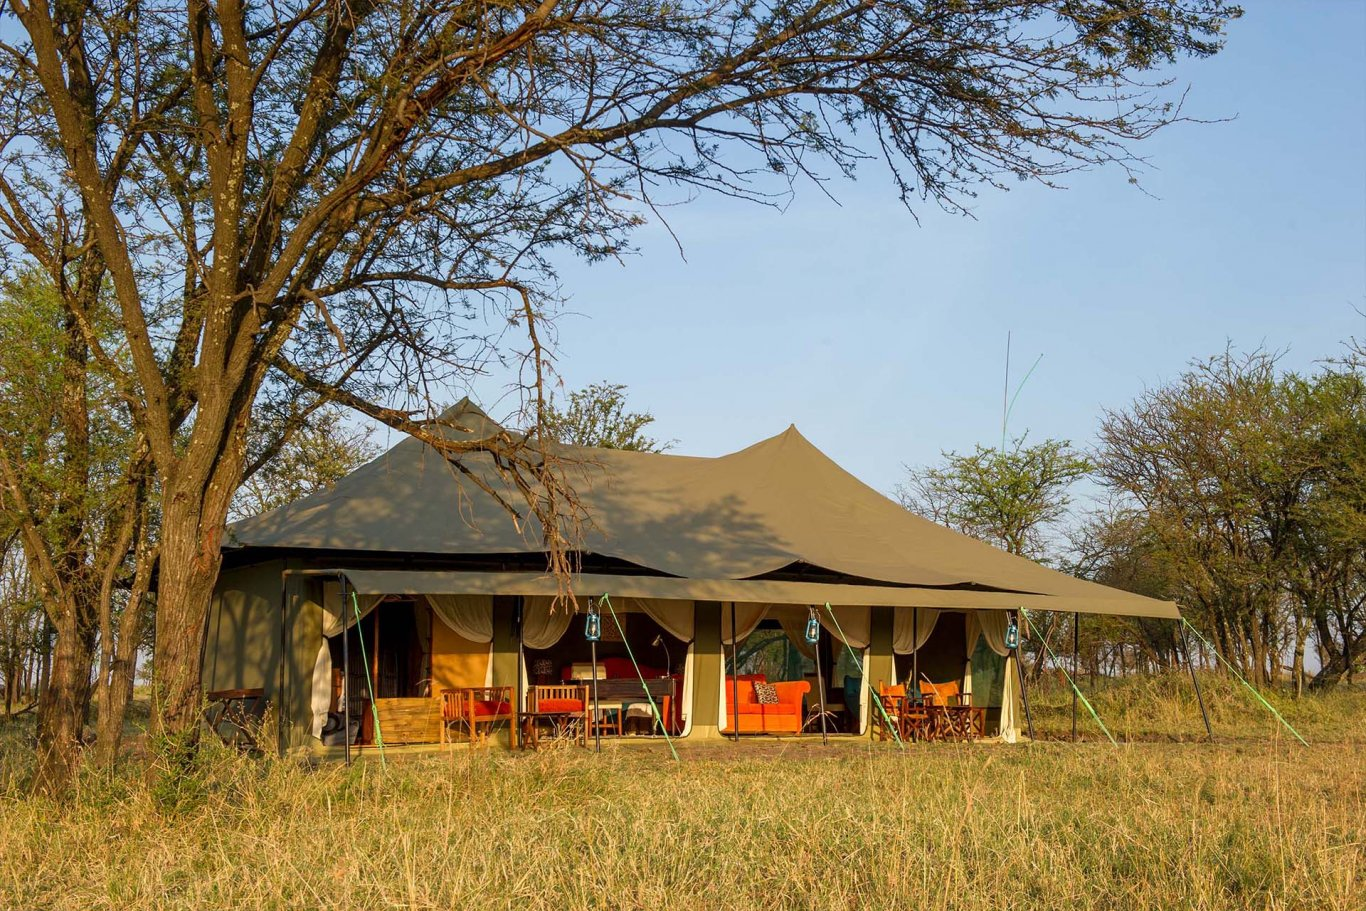 6 DAY SERENGETI BUDGET TENTED CAMPS SAFARI